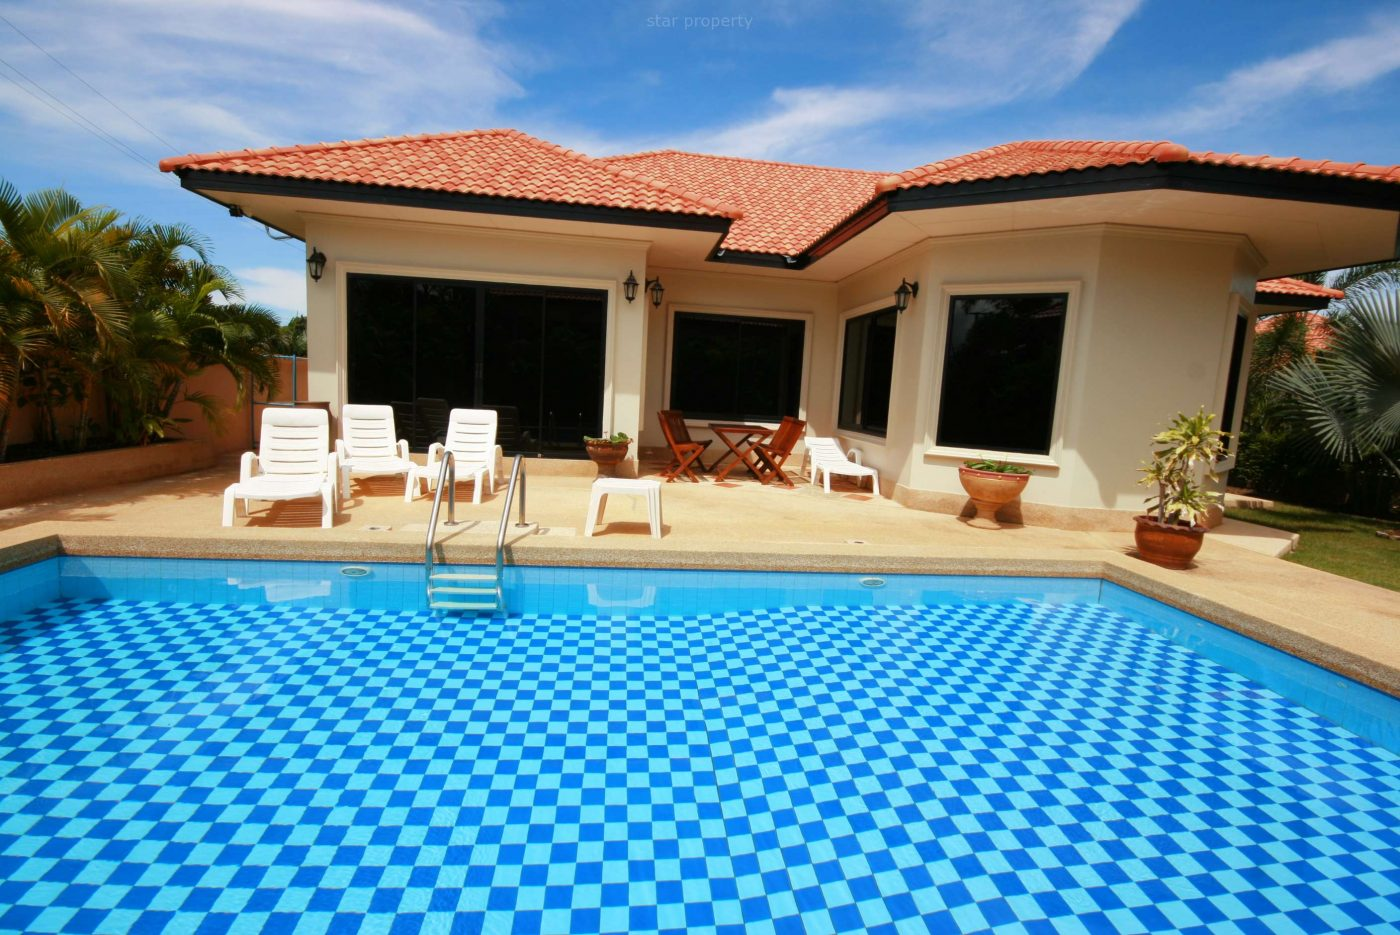 Beautiful Villa with Pool at Orchid for Rent at Star Property Hua Hin Co., Ltd 6/5